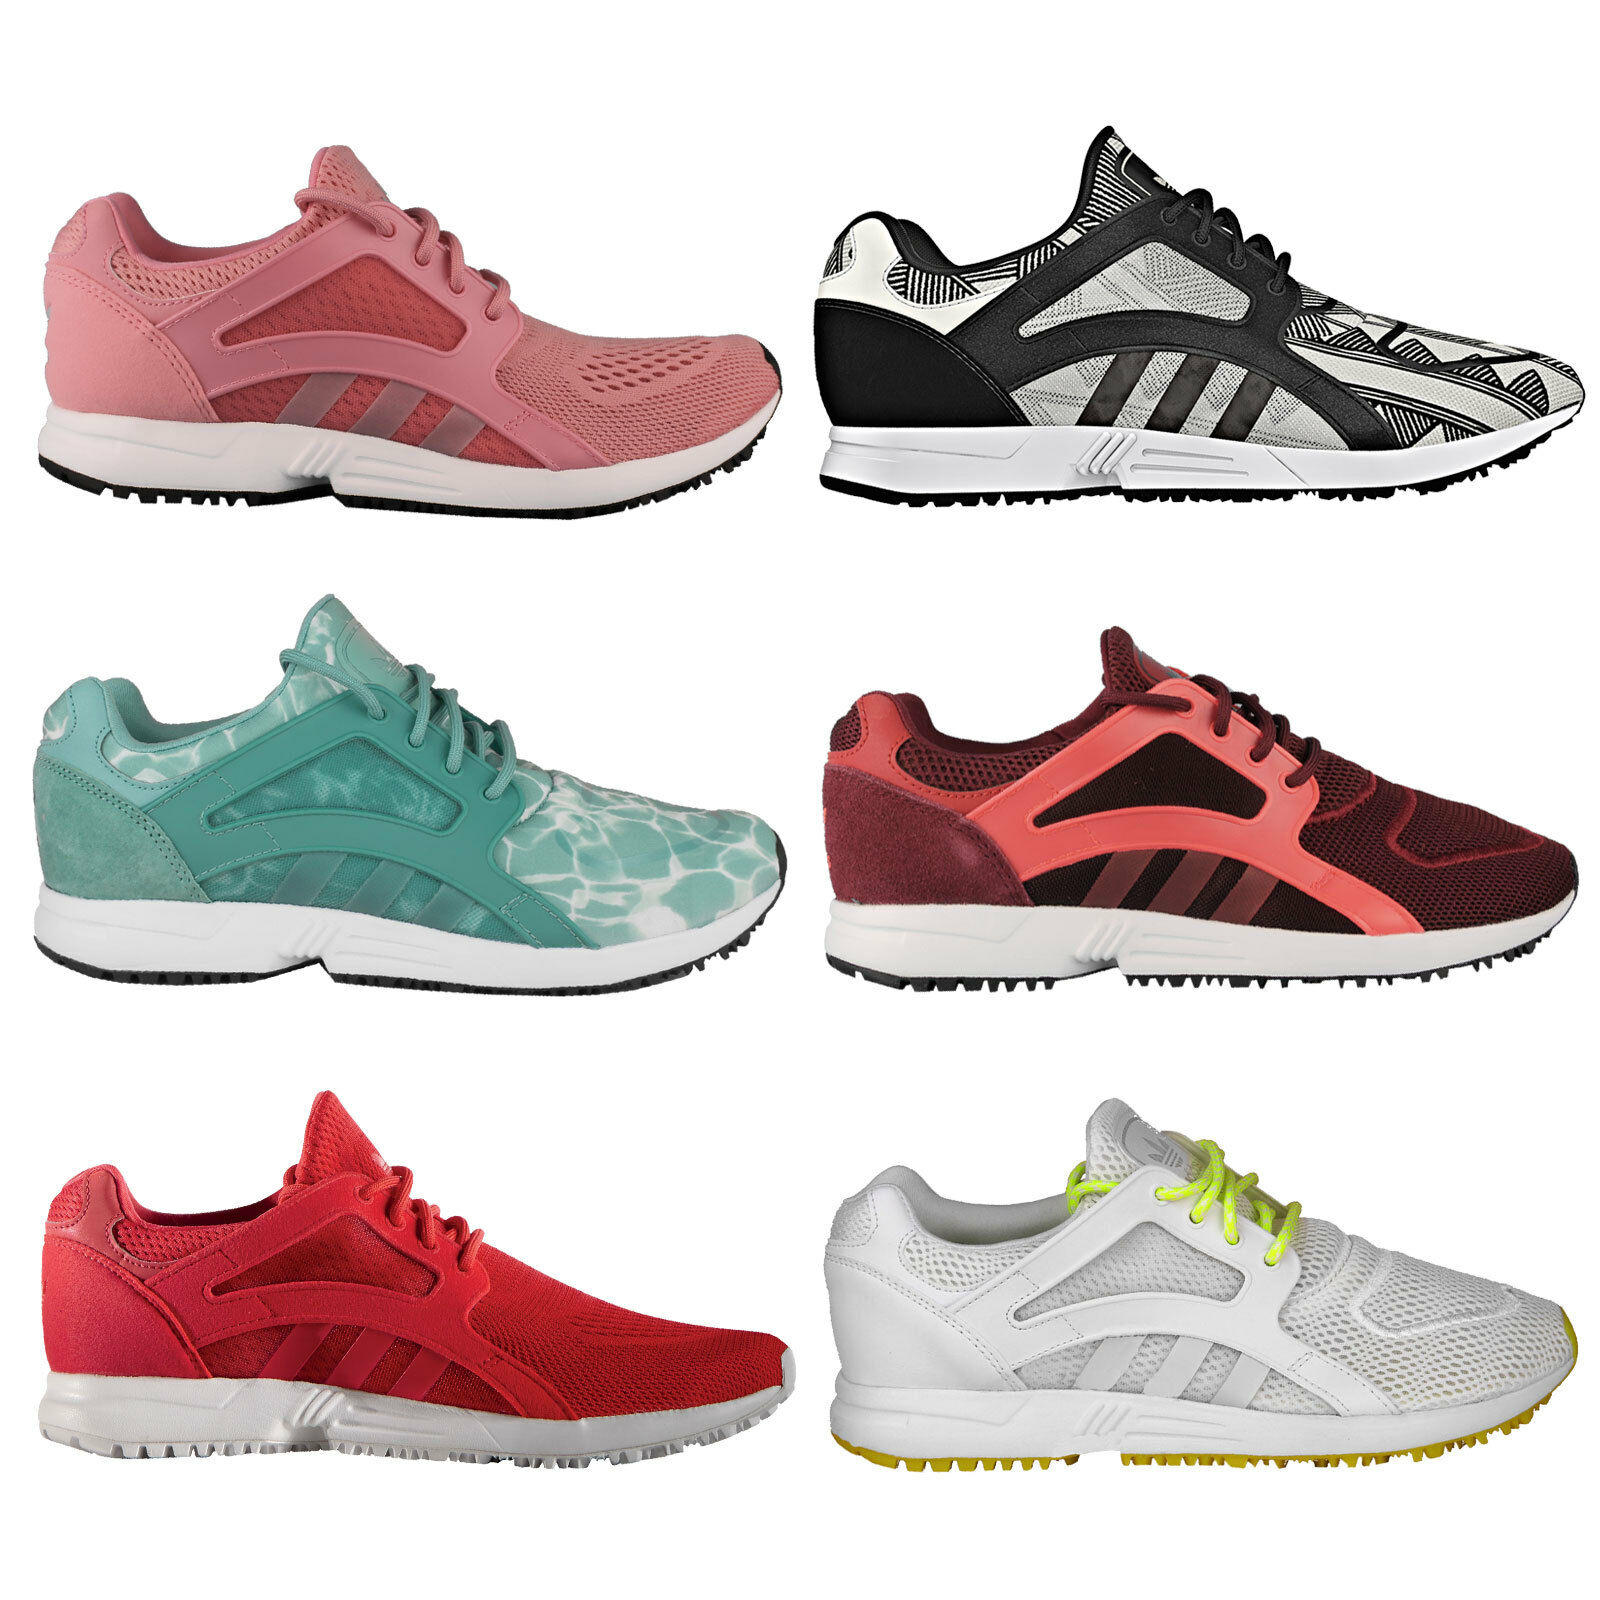 Adidas Originals Racer Lite Women's Sneakers Trainers Sport shoes Loafers New